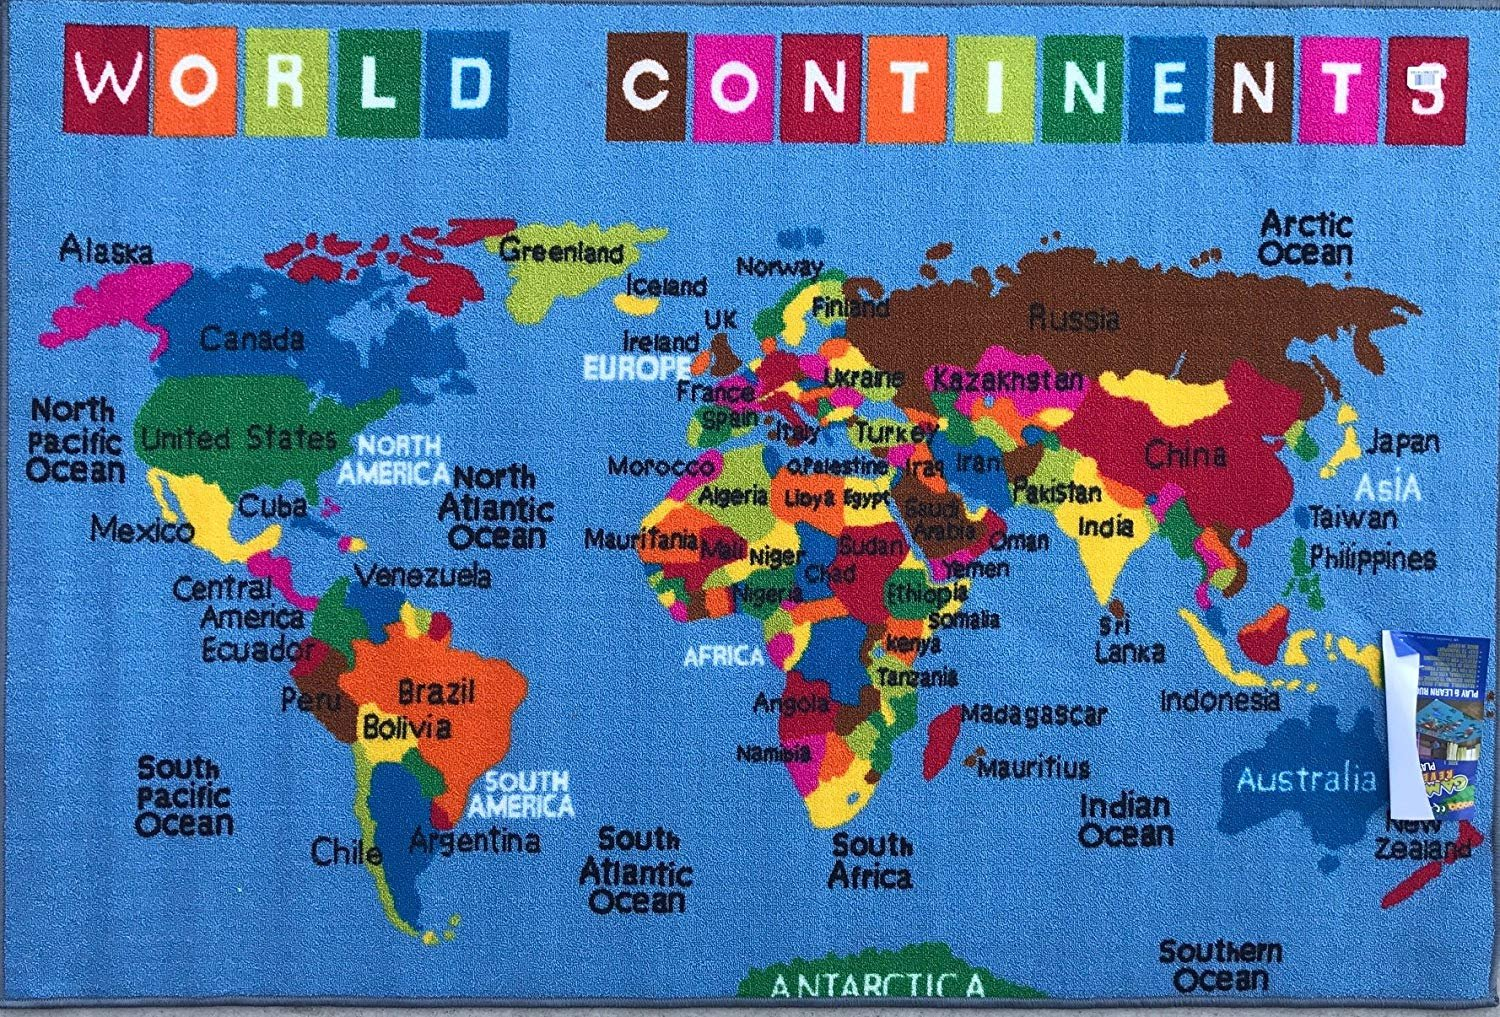 Play Time 4x6 Kids Area Rug Reversible World Continent Map Learning  X World Map on 3x3 world map, 3x5 world map, full page world map, square world map, legal world map, letter world map, 24x36 world map, 10x8 world map, custom world map, 11x14 world map, a4 world map, 10x12 world map, 15x18 world map, 11x17 world map, 8x11 world map, 16x20 world map, 4x8 world map, 12x18 world map, 8x10 world map, size world map,